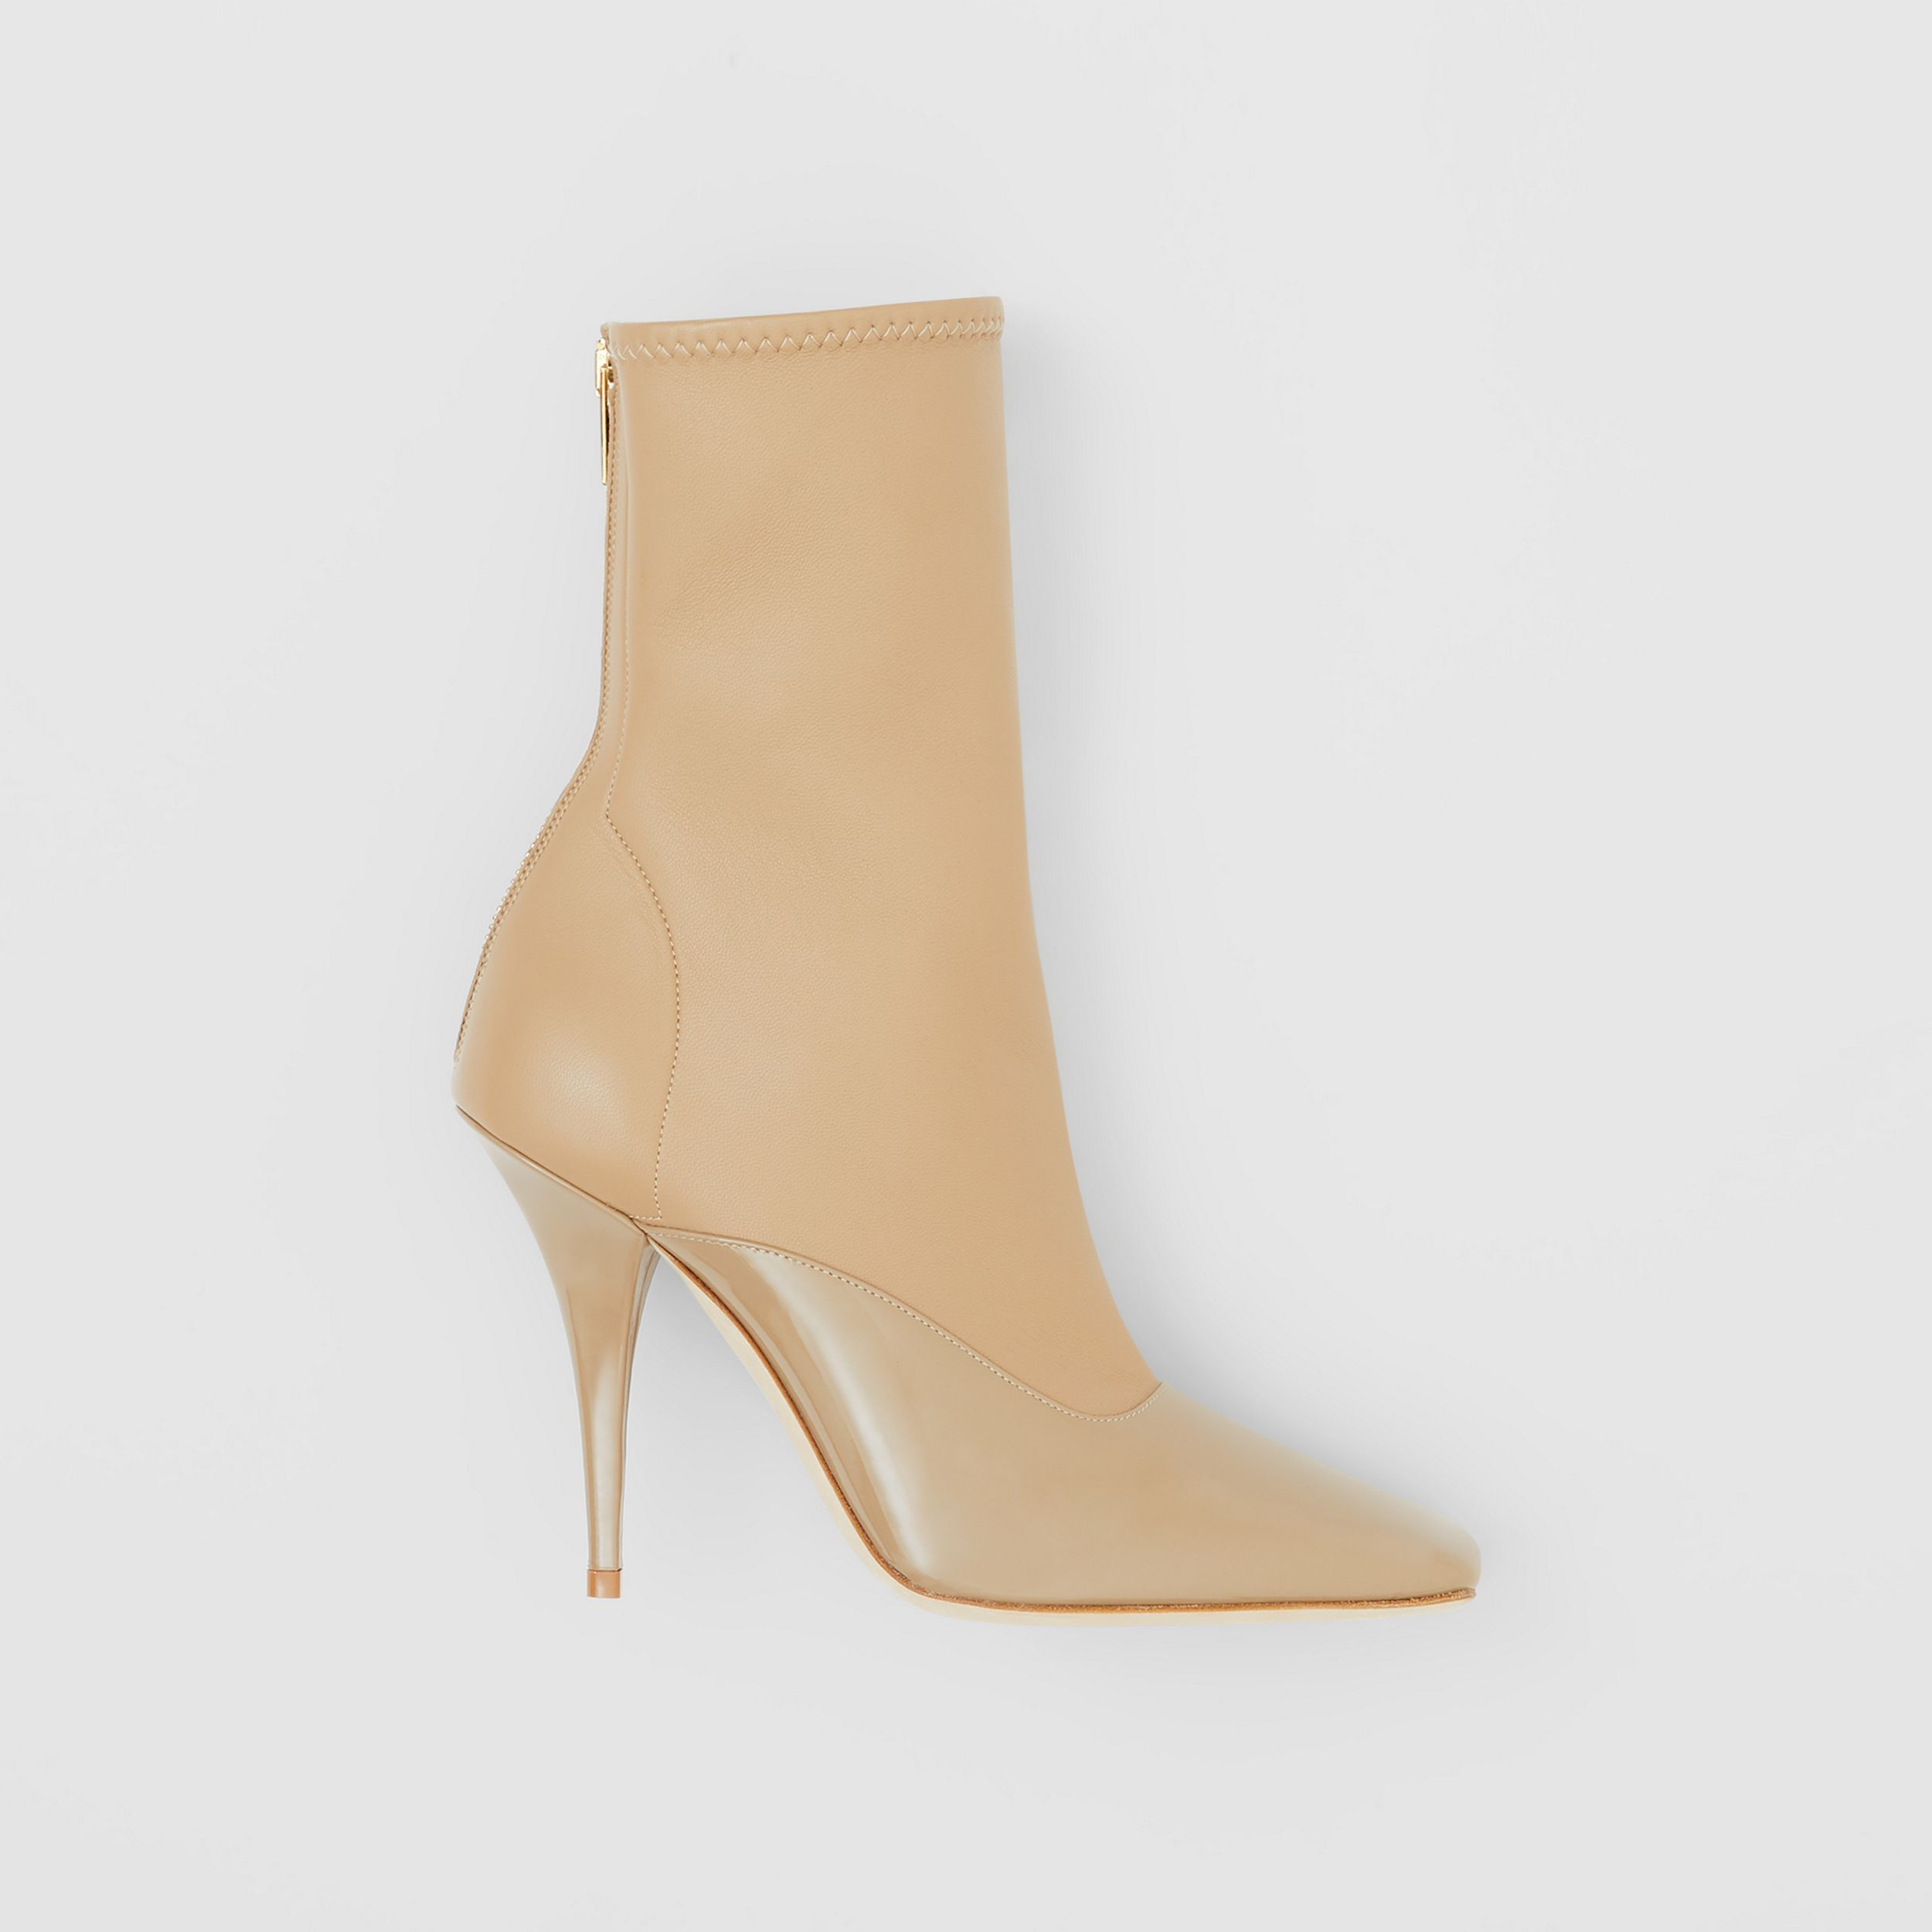 Lambskin and Patent Leather Ankle Boots in Dark Honey | Burberry - 1